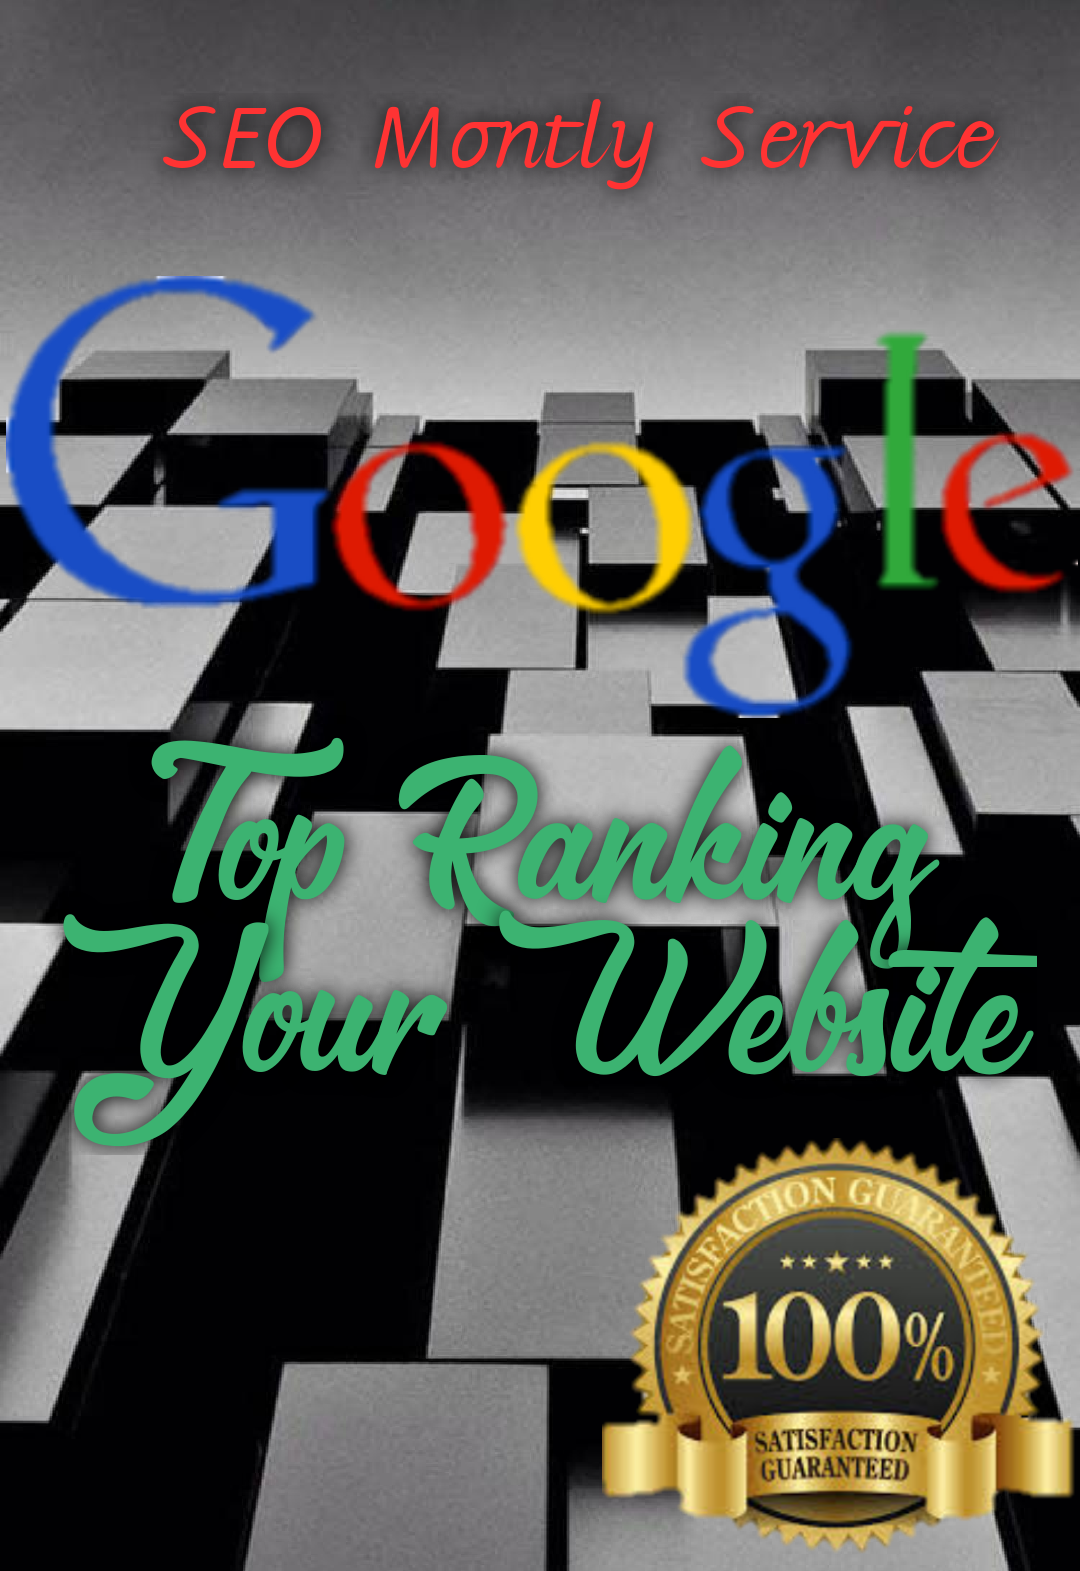 2020 Top your website ranking on google monthly service quality building backlinks all in one update